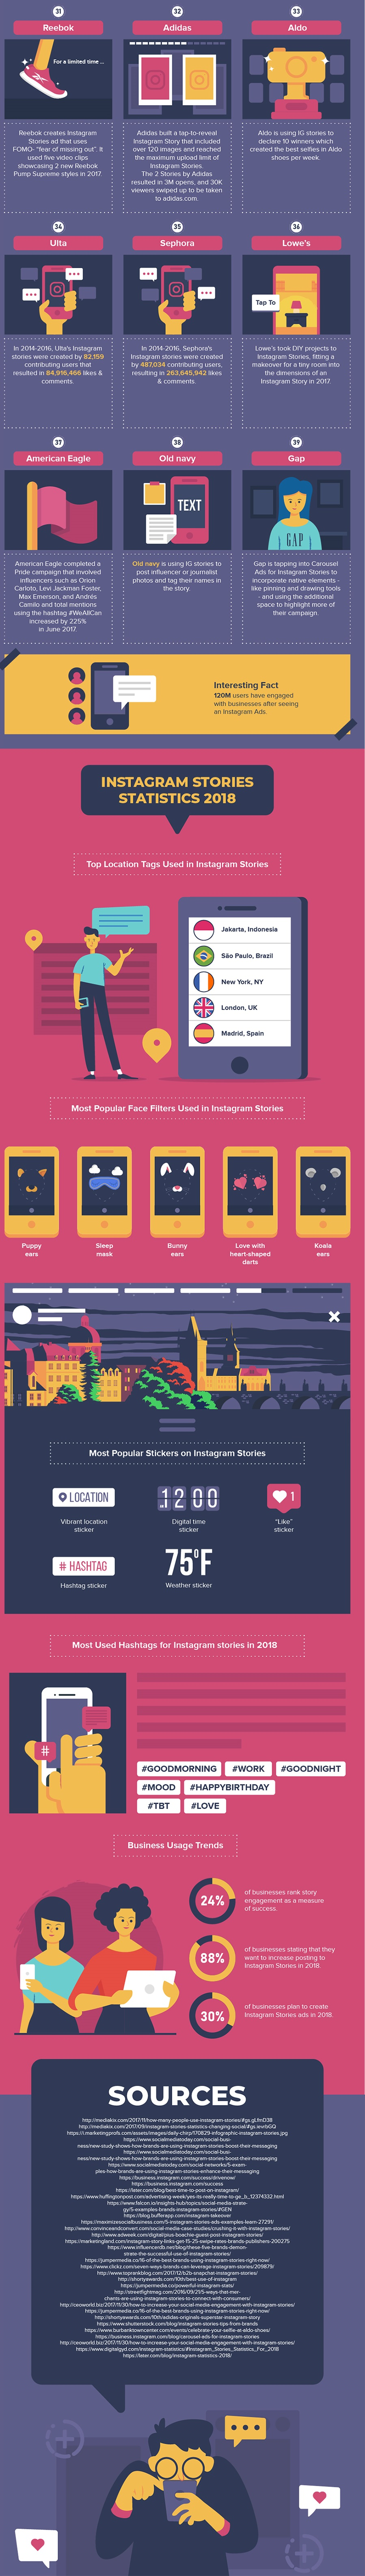 Infographic looks at Instagram Stories usage by brands